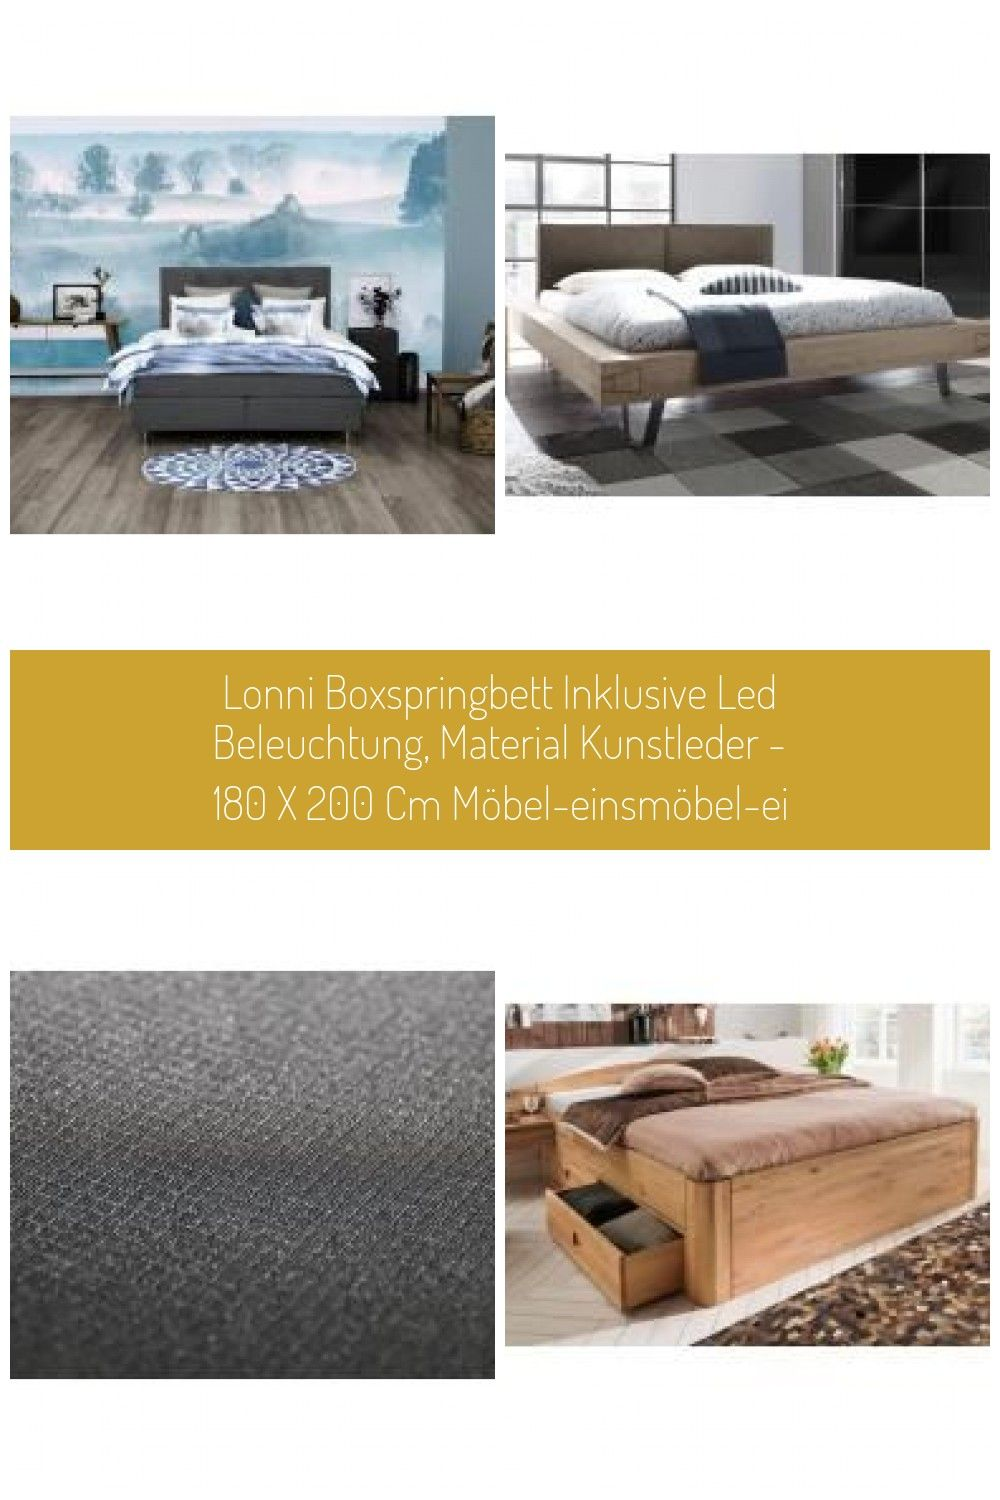 Places Of Style Boxspring Bett Nordica Grau H2 Places Of Styleplaces Of Style Pflanzen Dekor Boxspringbe In 2020 Modernes Design Led Beleuchtung Massivholzbett